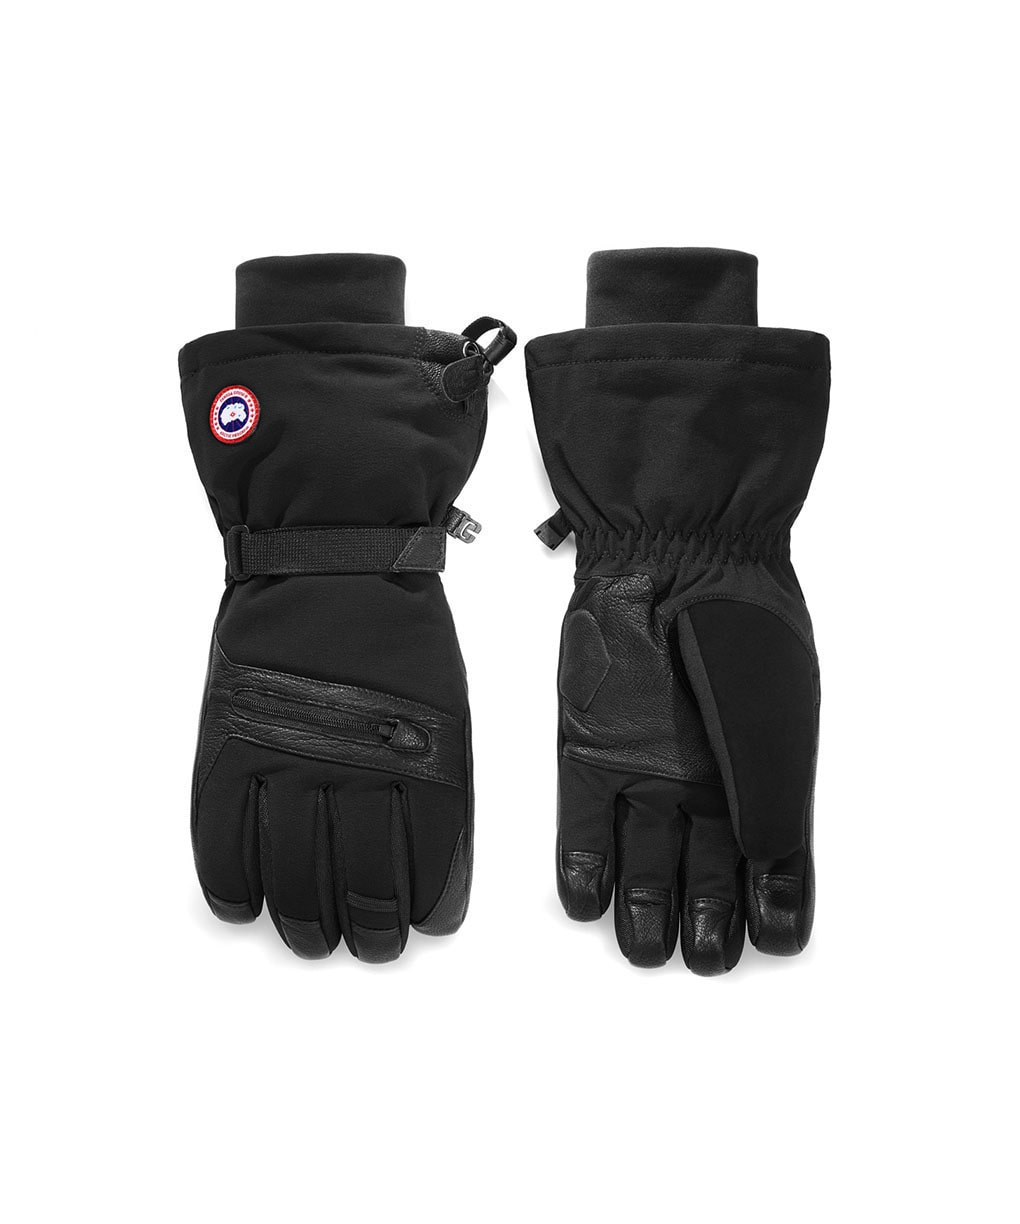 NORTHERN UTILITY GLOVE